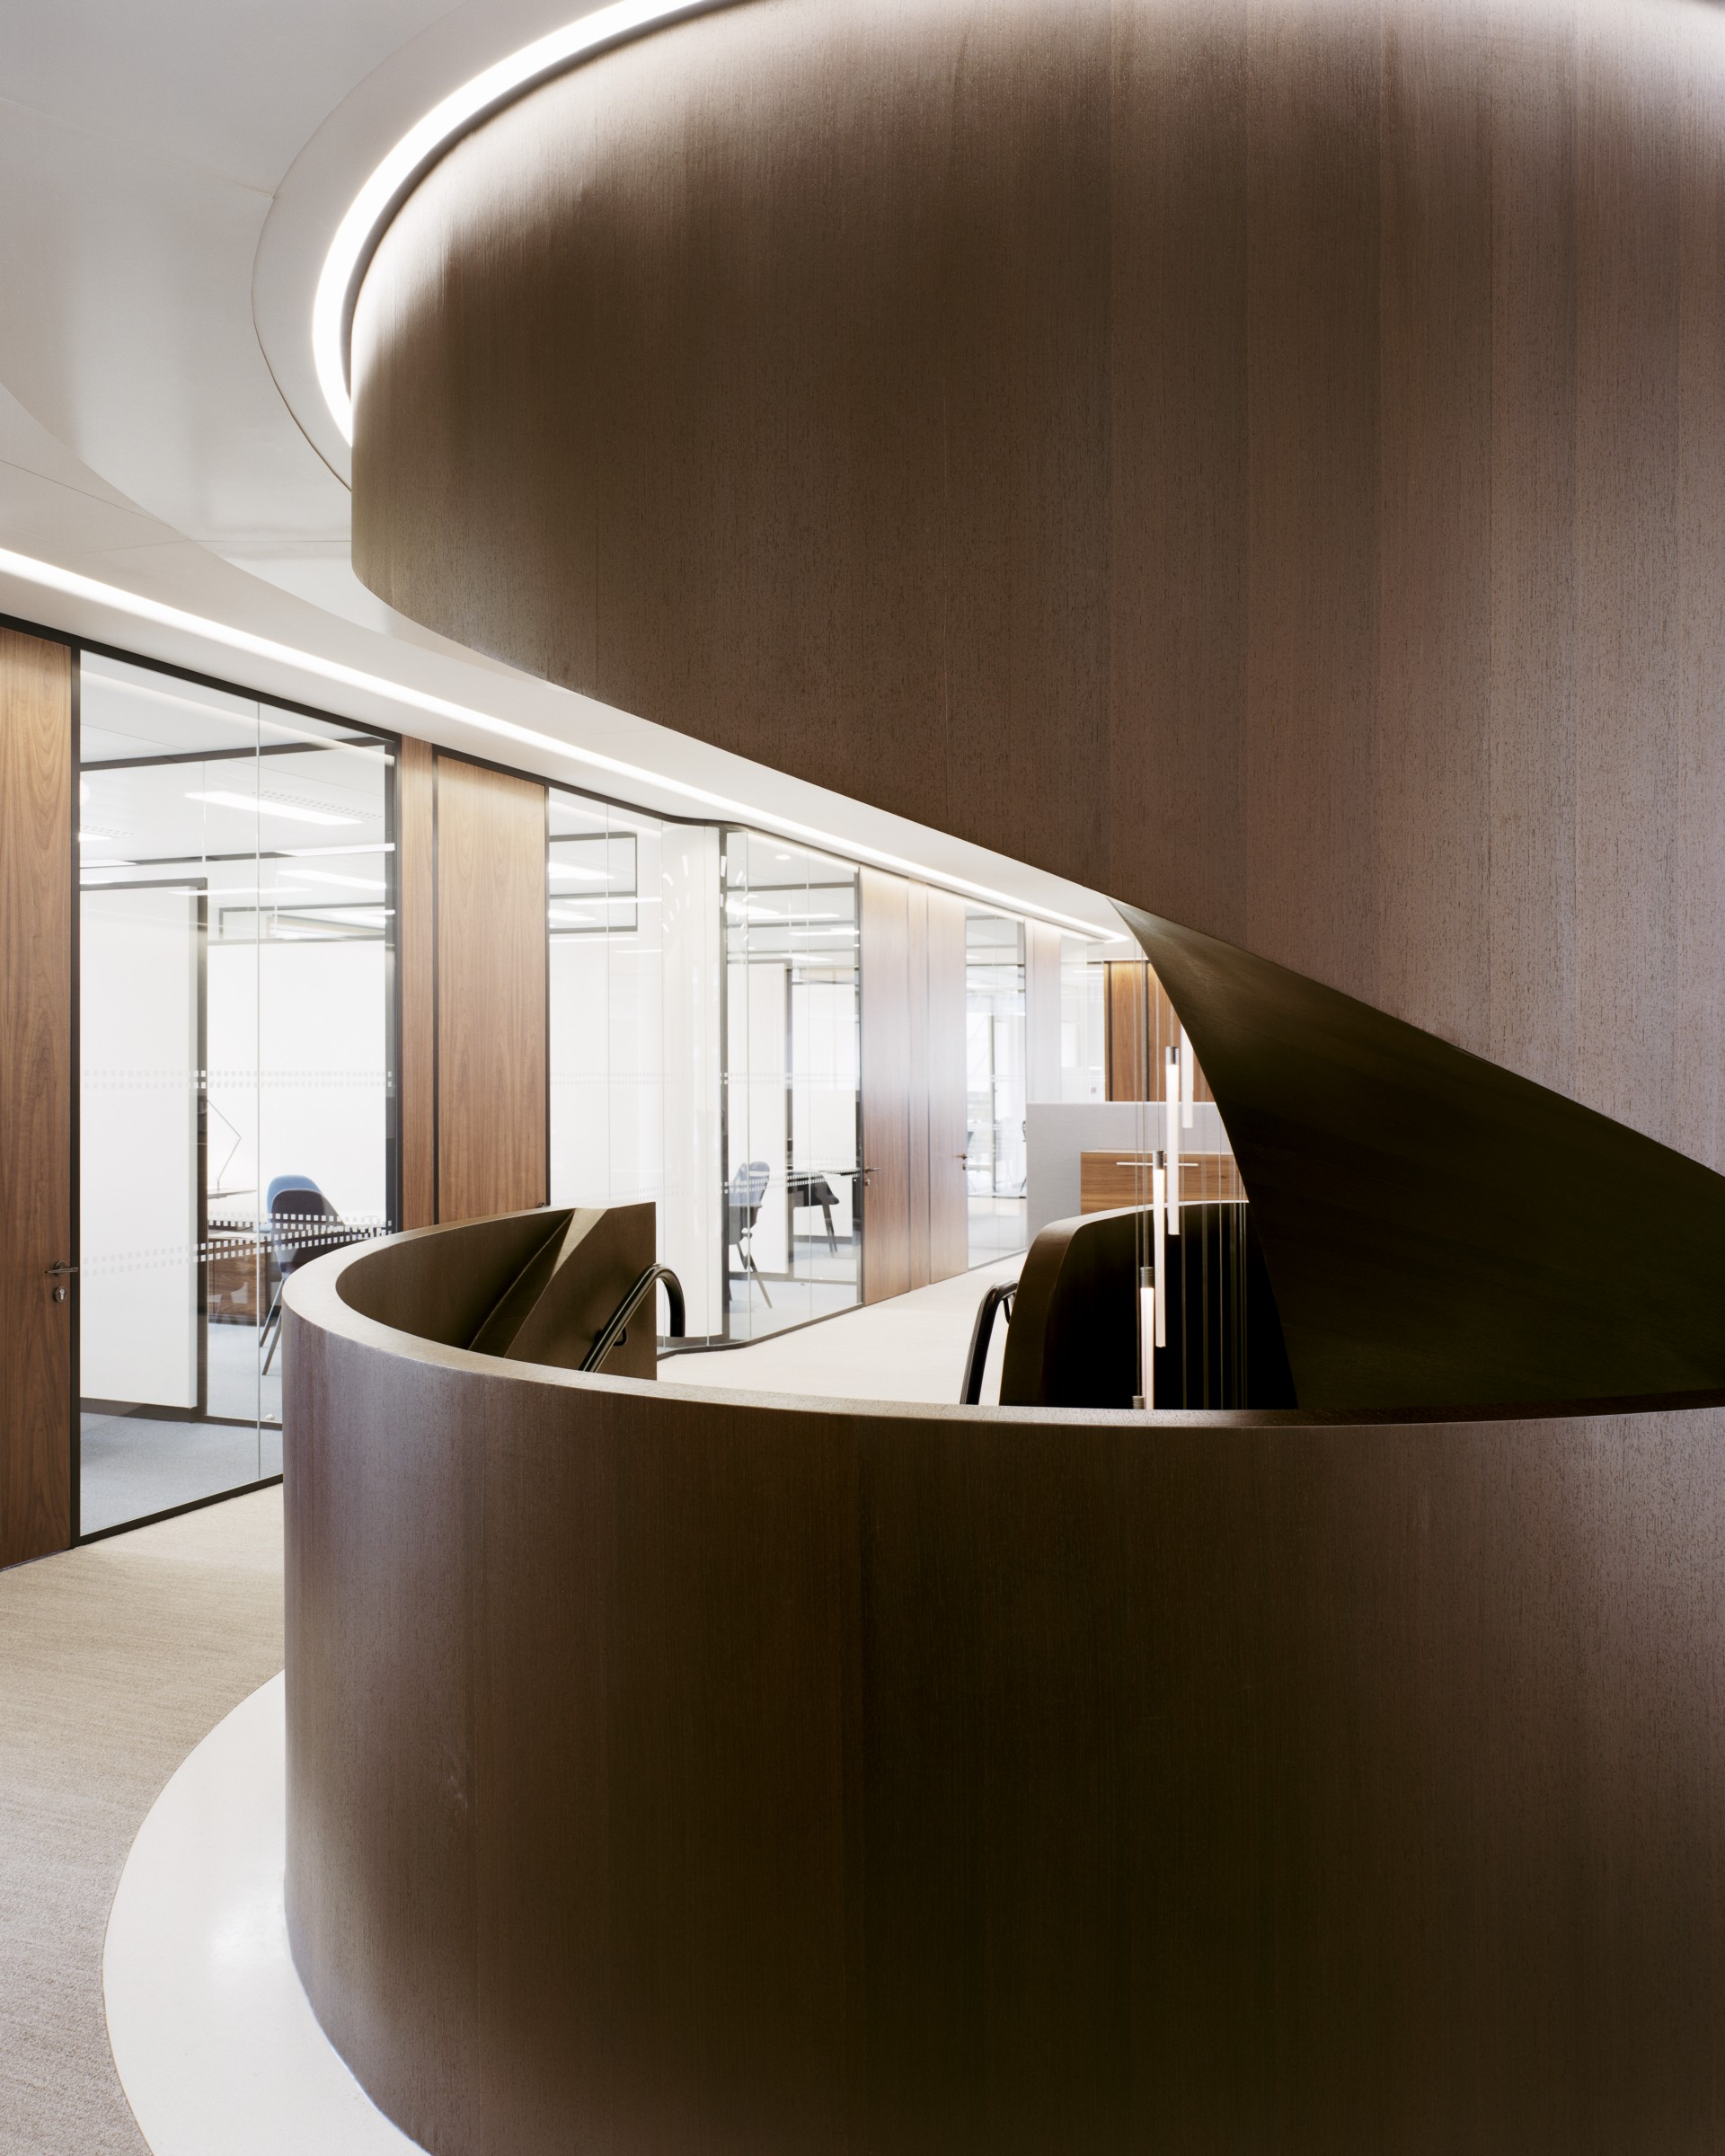 Powerhouse Company and AllesWirdGut: two very different examples of office interiors